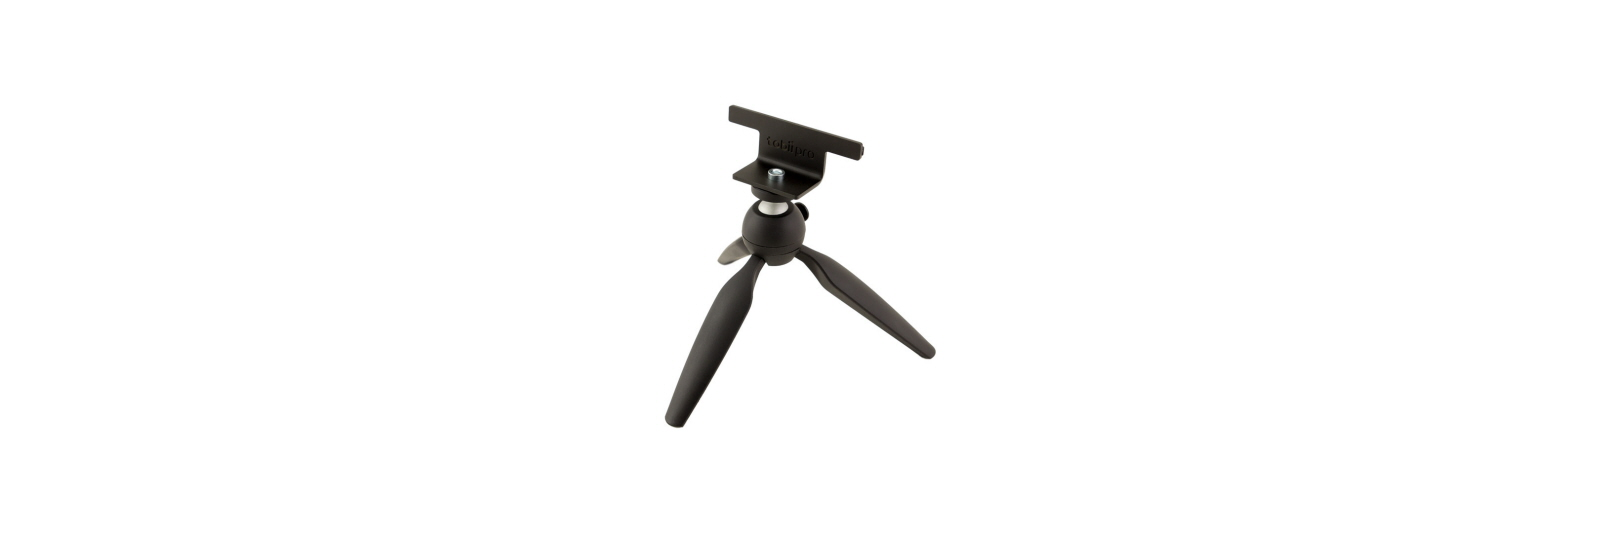 A tripod stand for Pro X3-120 eye tracker